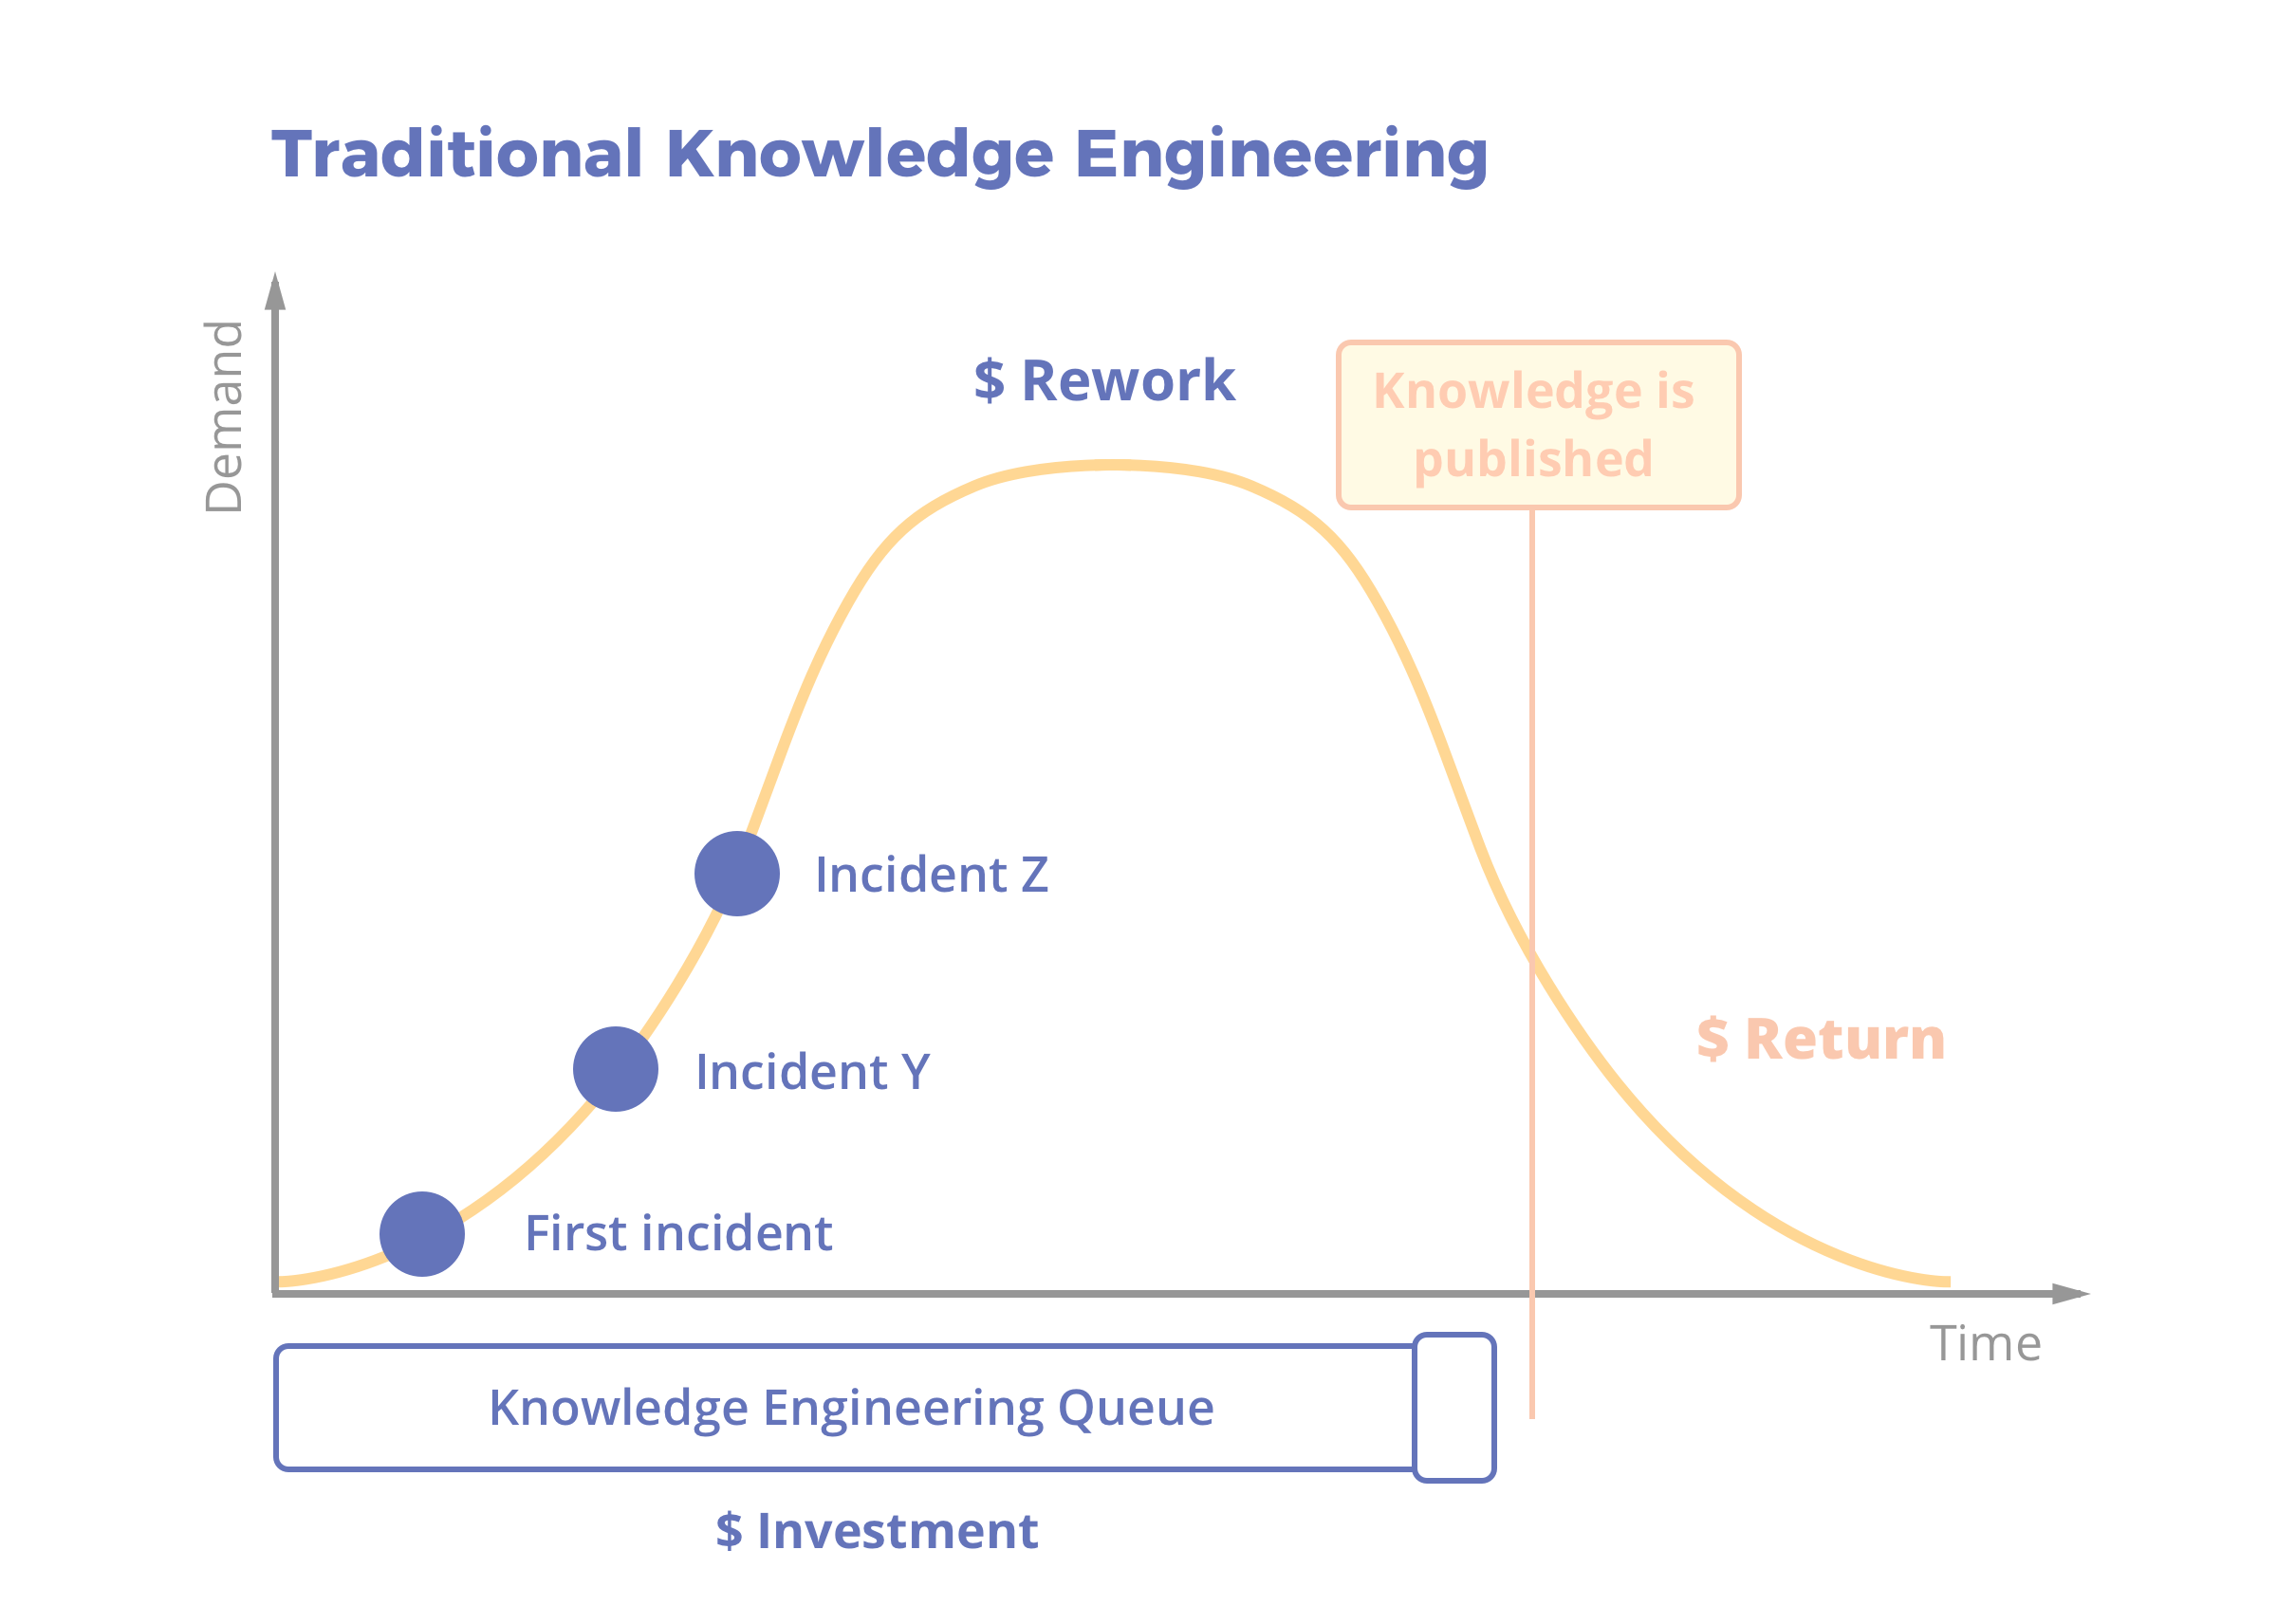 KCS: Traditional Knowledge Engineering